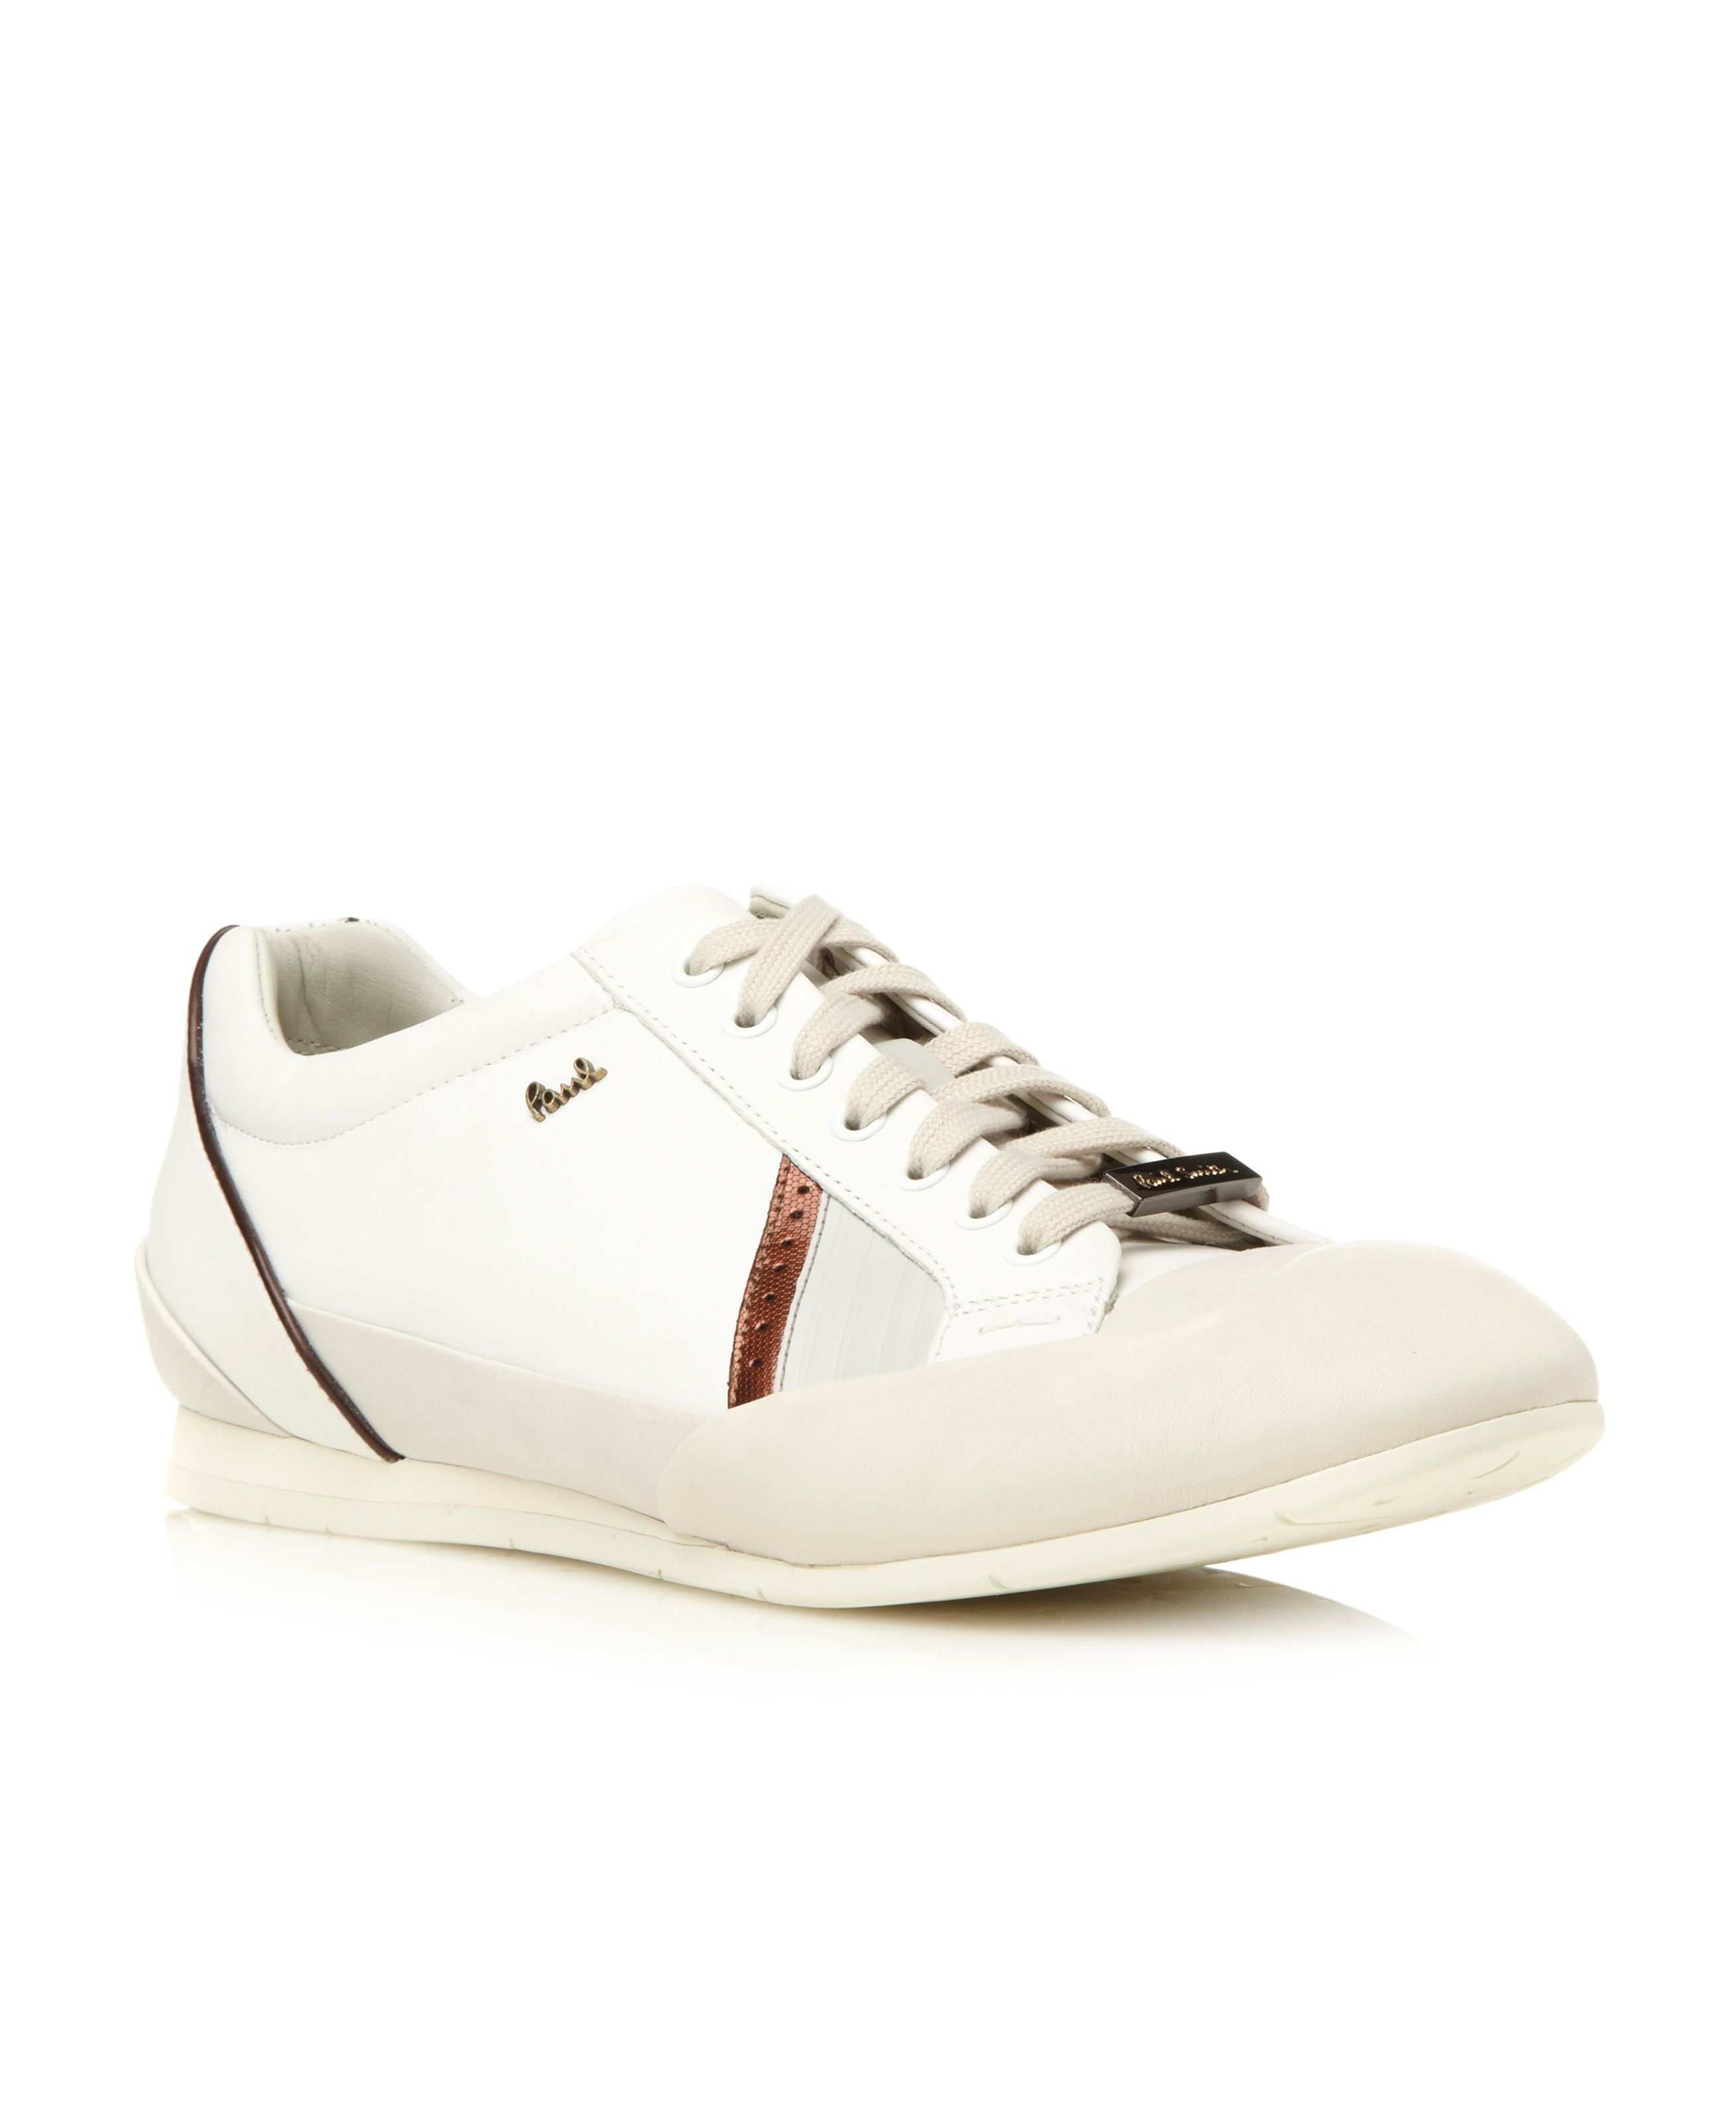 Winder bump toe side stripe trainers